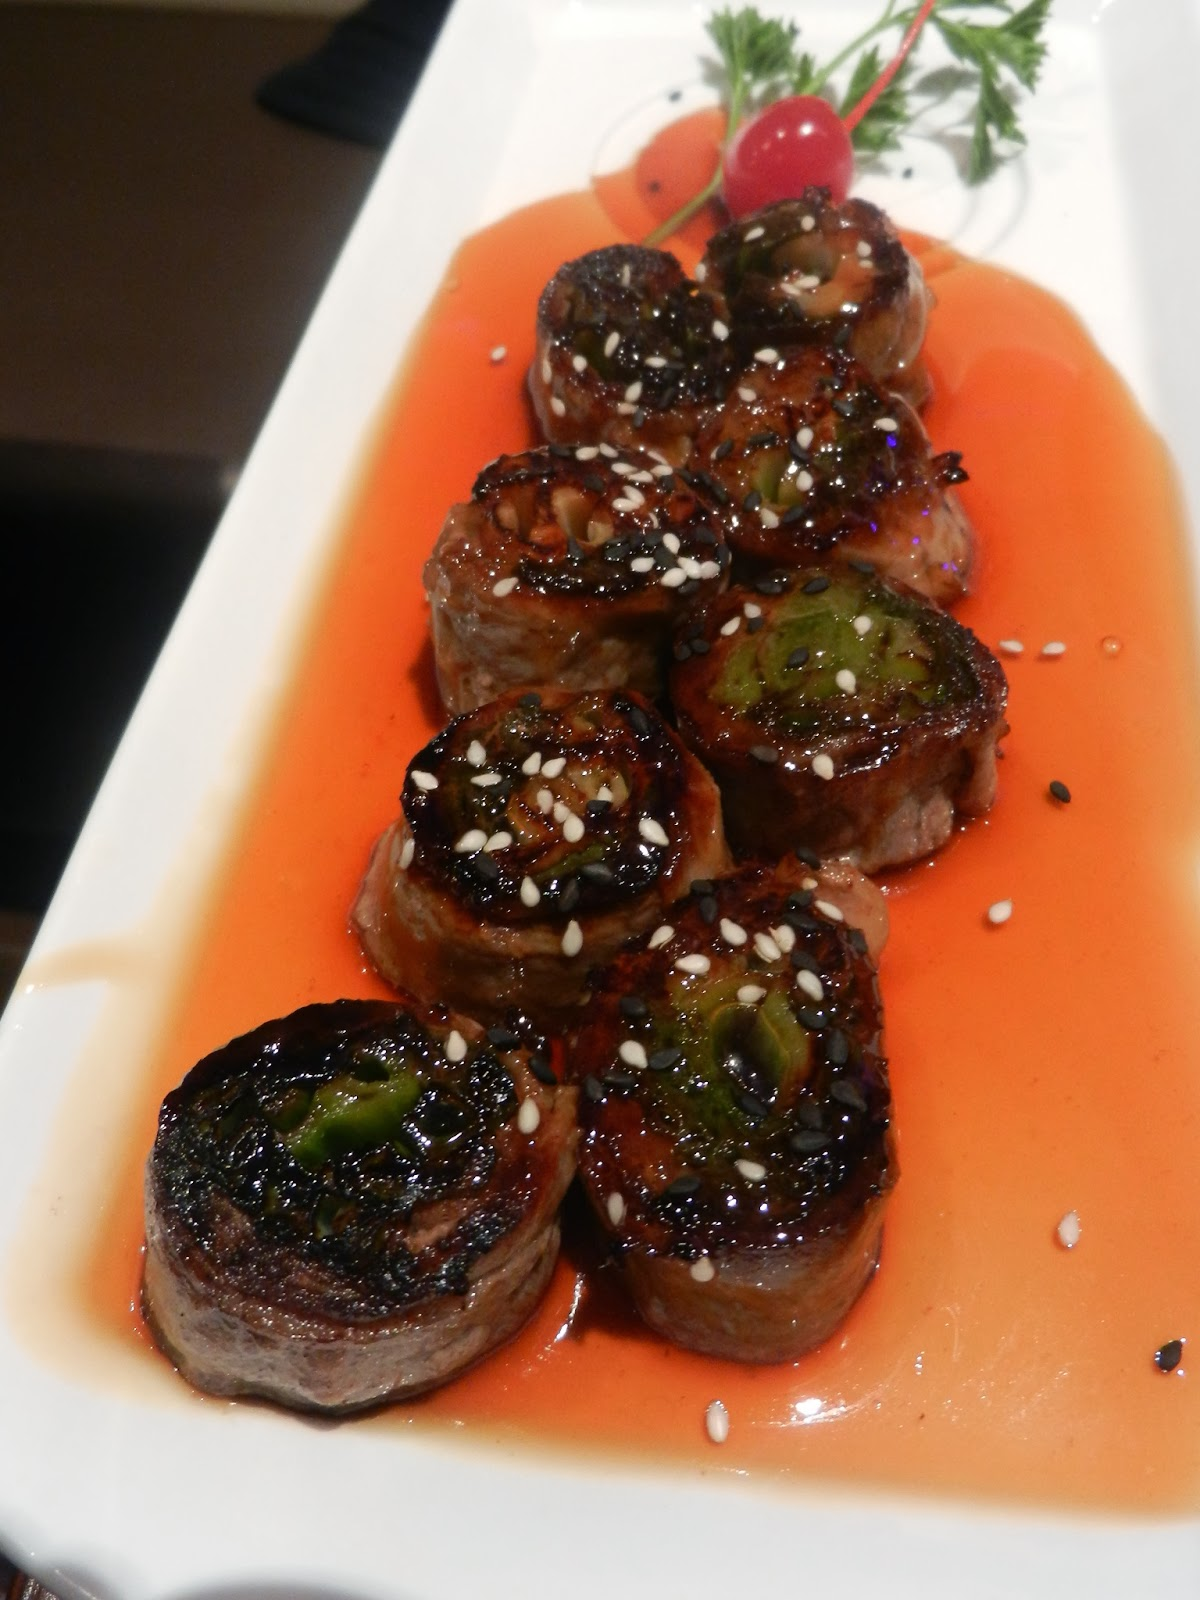 Belly of the Pig: Crazy Sushi Review